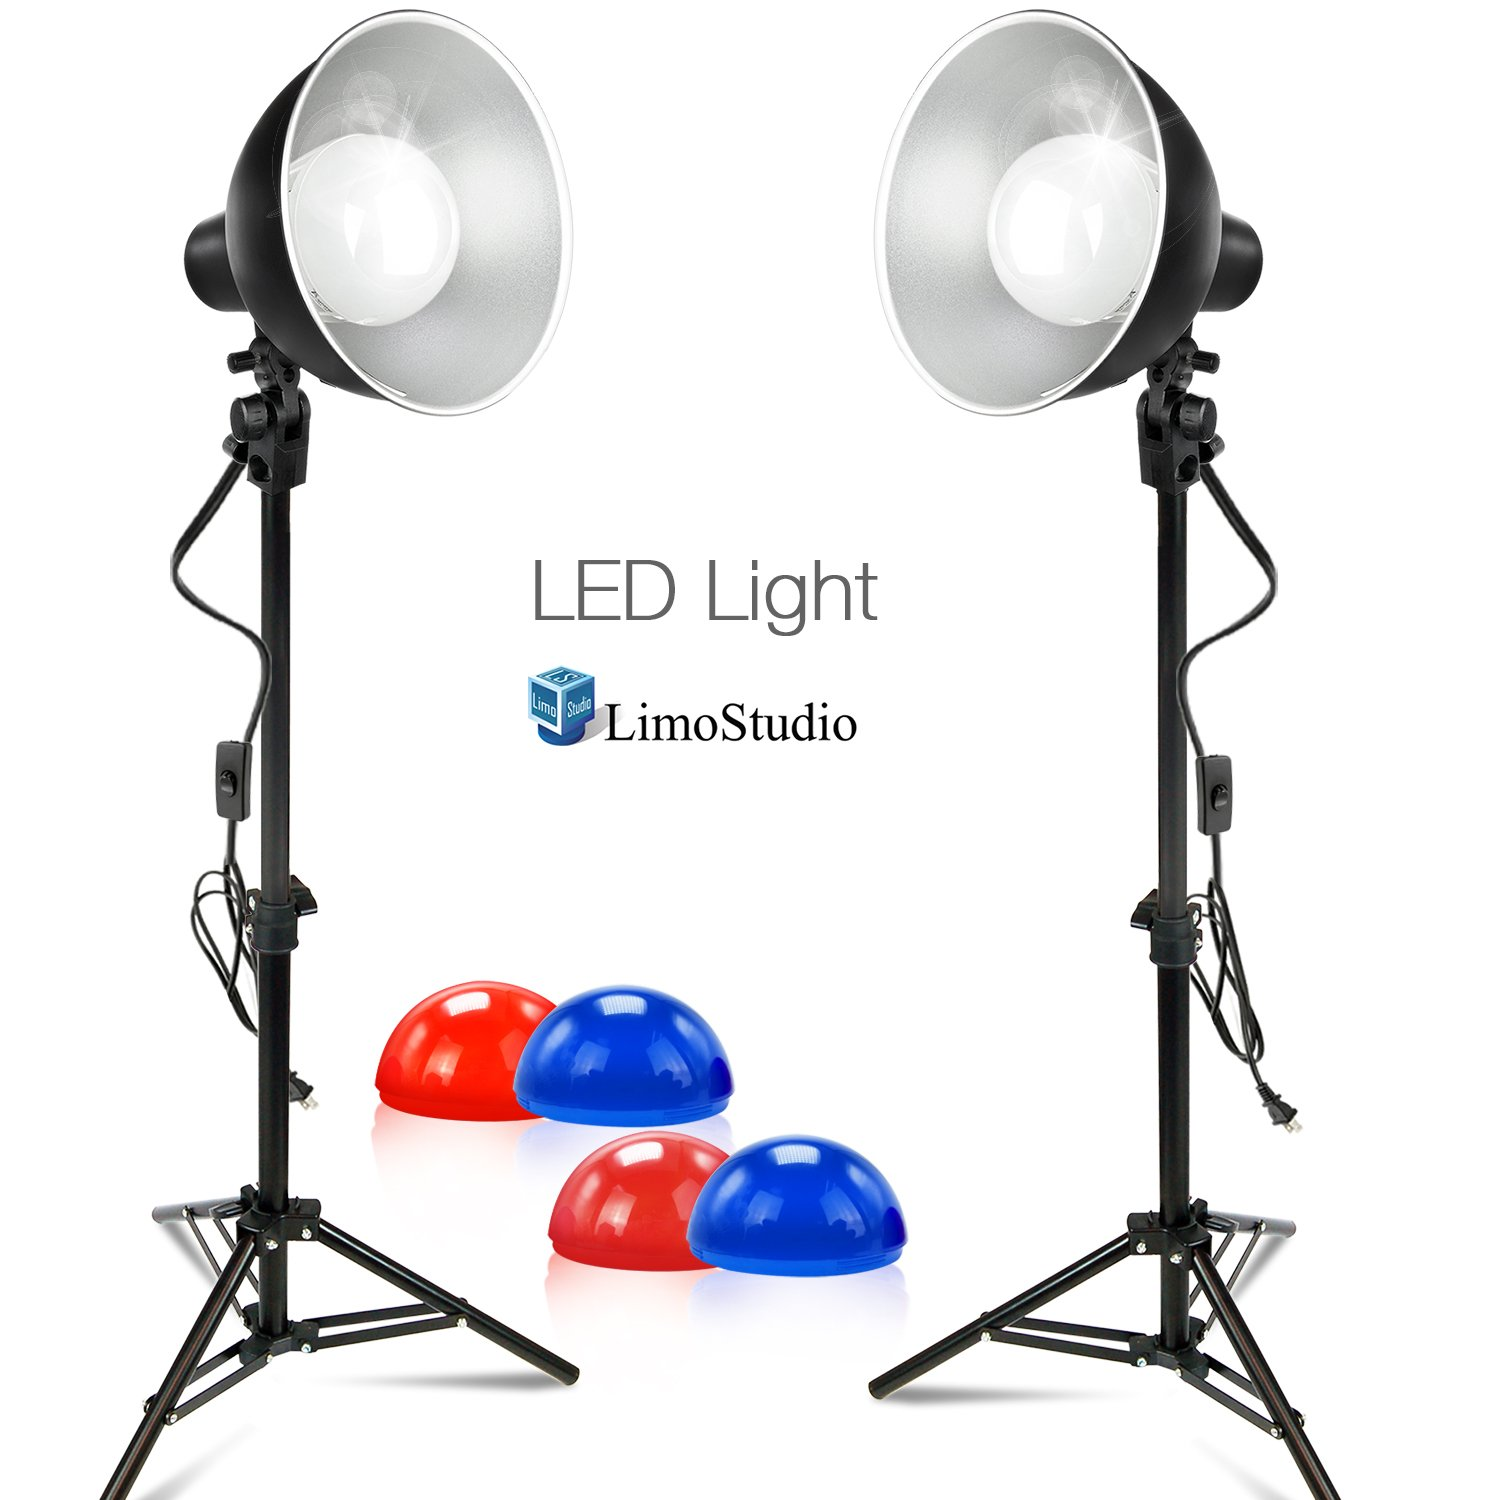 Limostudio Set of 2 LED Table Top Photo Studio Bowl Reflector Lighting Kit with Mini Light Stand Tripods, Energy Saving Light Bulbs, and Color Filters, AGG2637